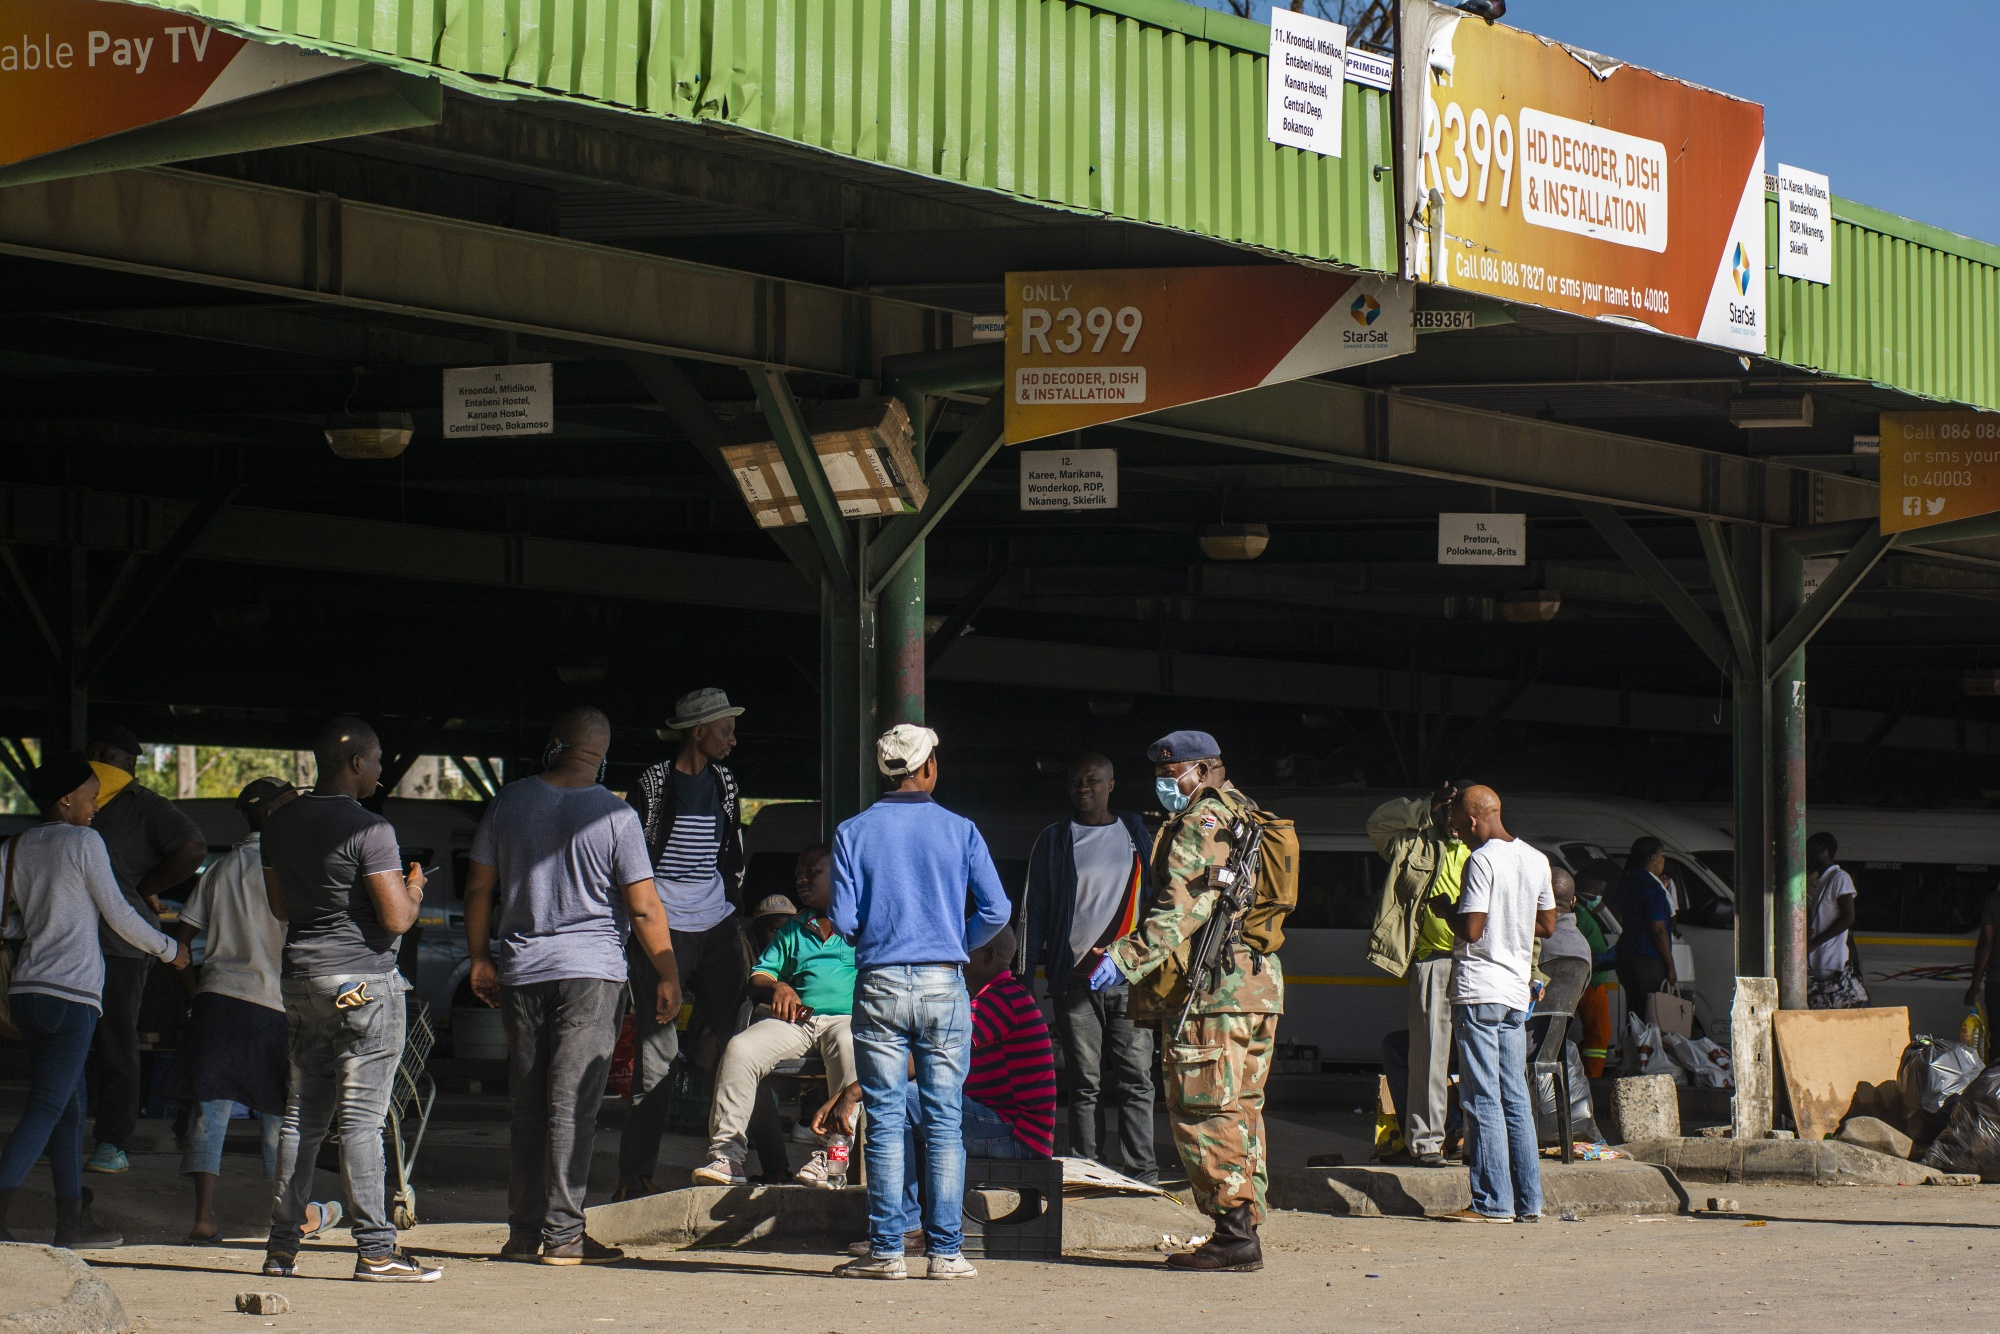 A South African National Defence Force soldier speaks with a group of people at a taxi rank in Rustenburg, South Africa.